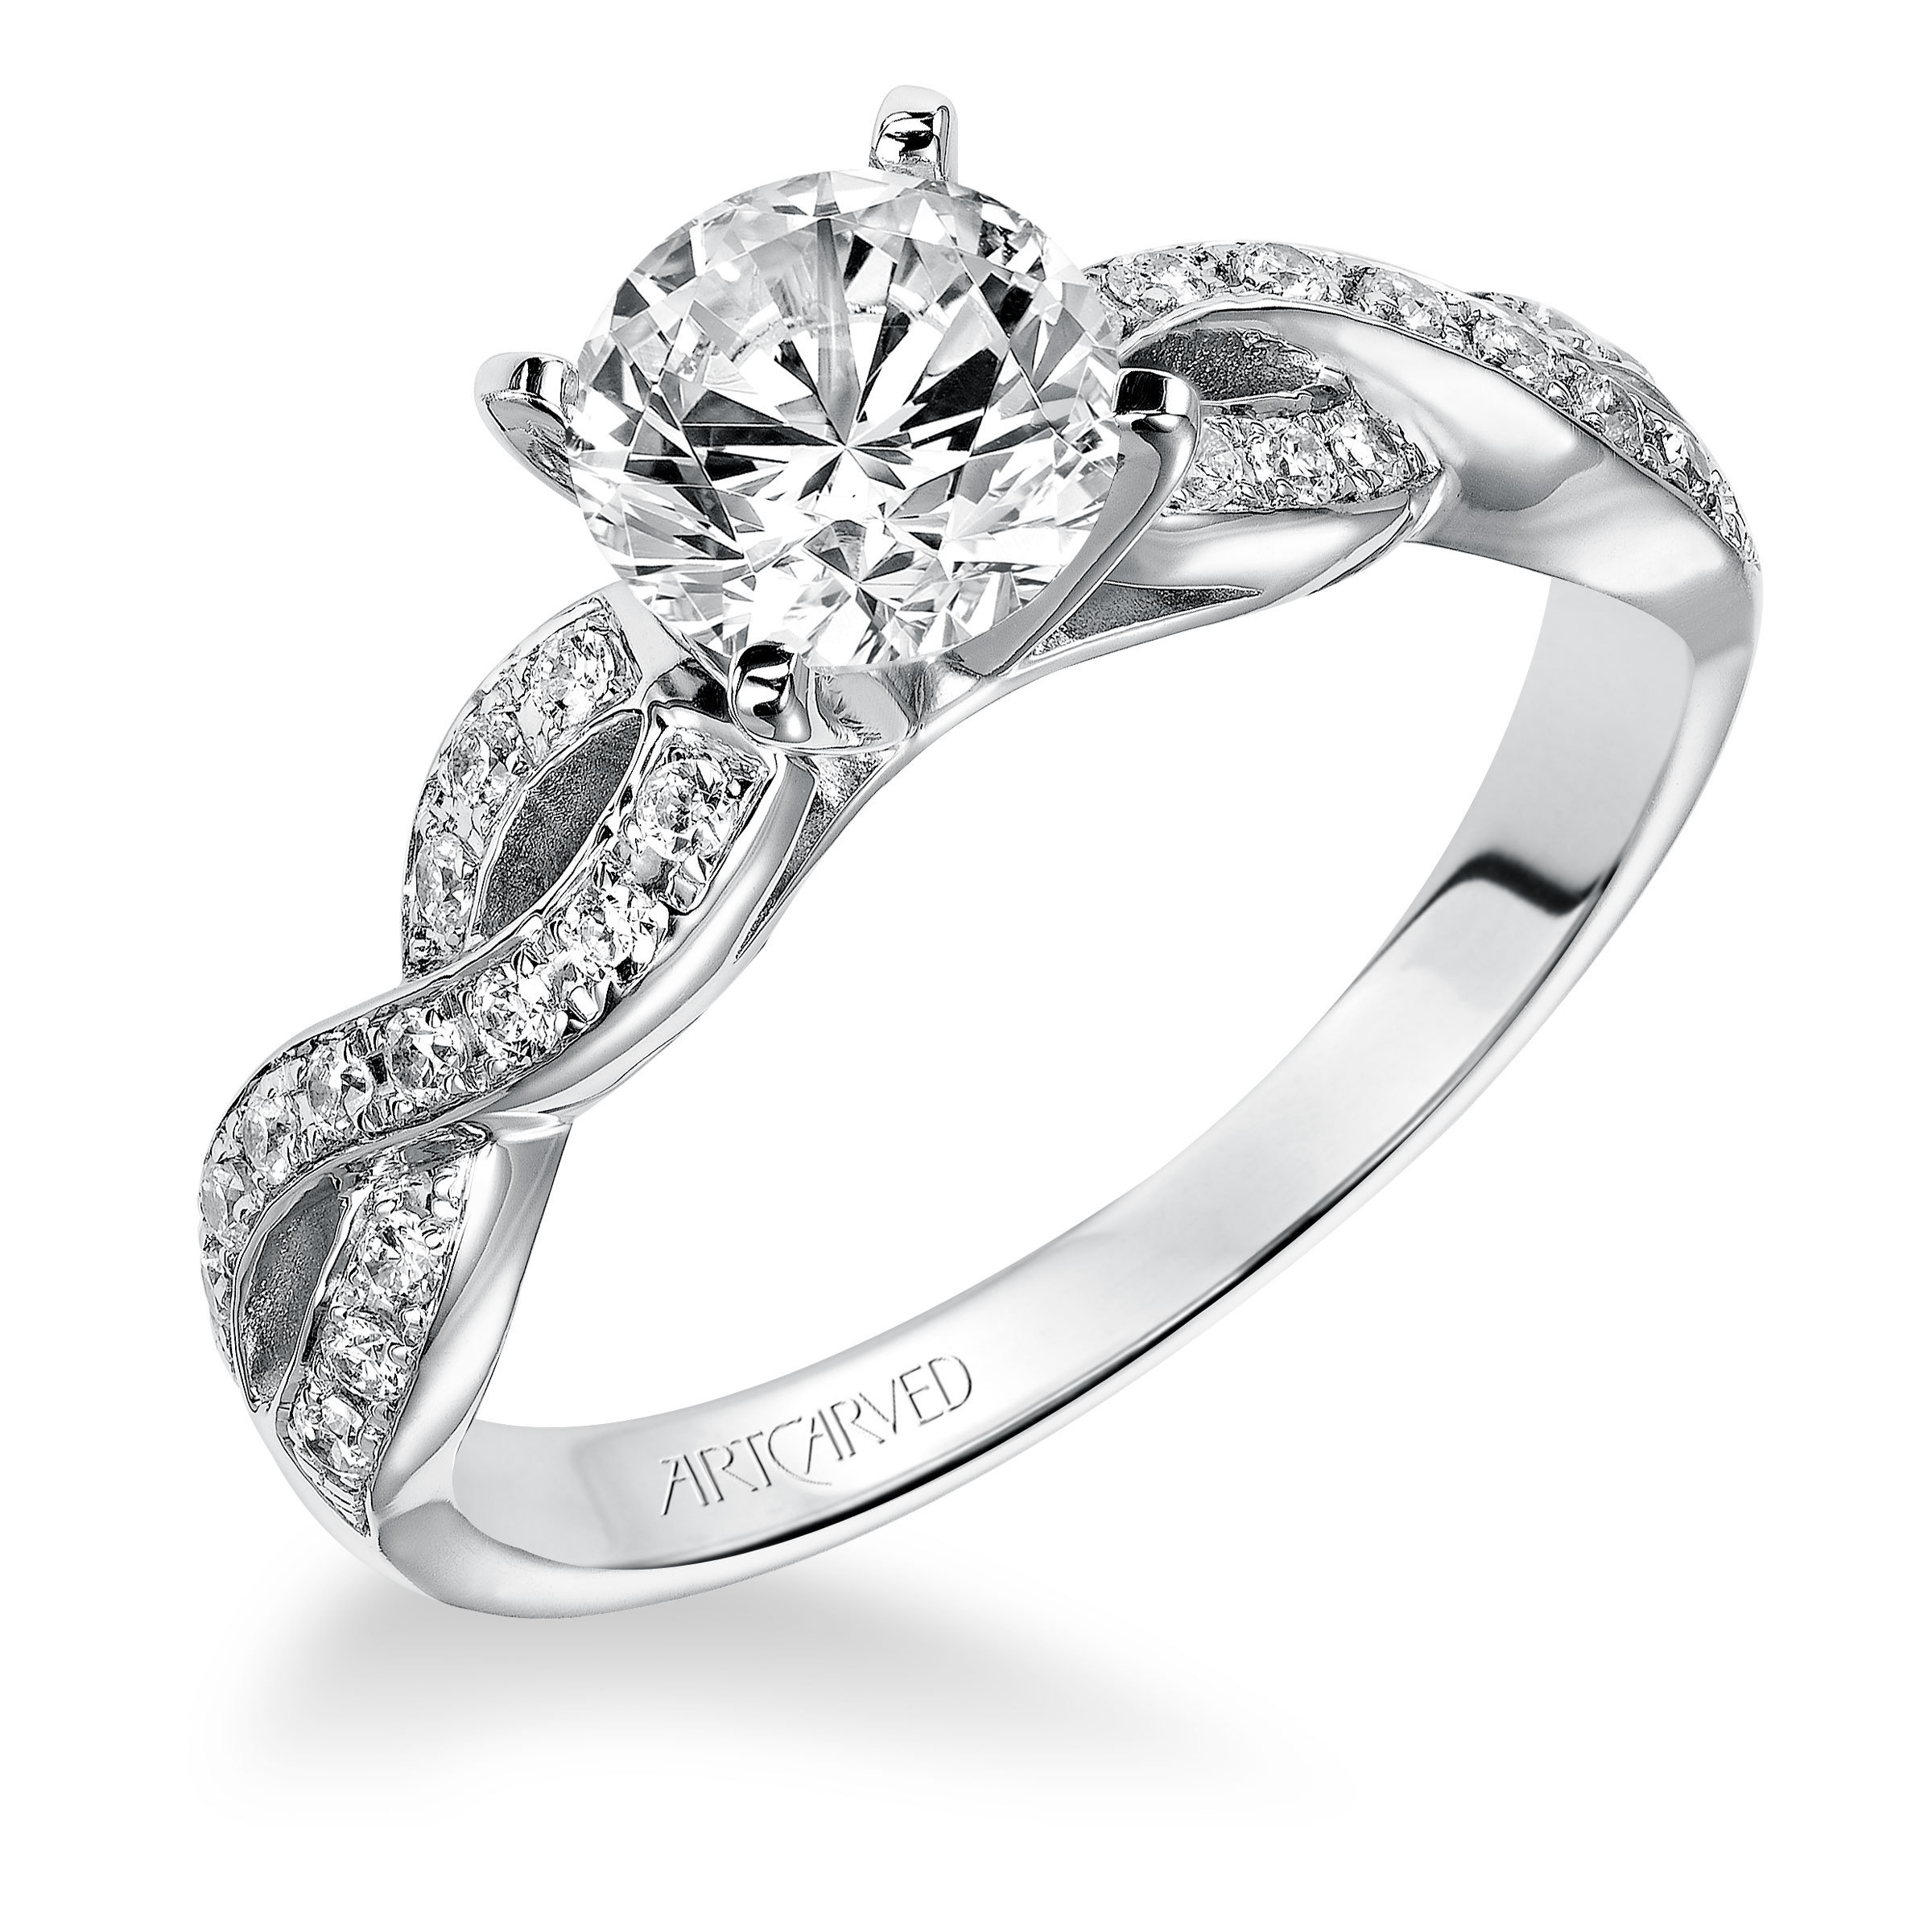 gorgeous scott elegant rings concept ideas day wedding from feature kay engagement of quot best quotparisi the ring